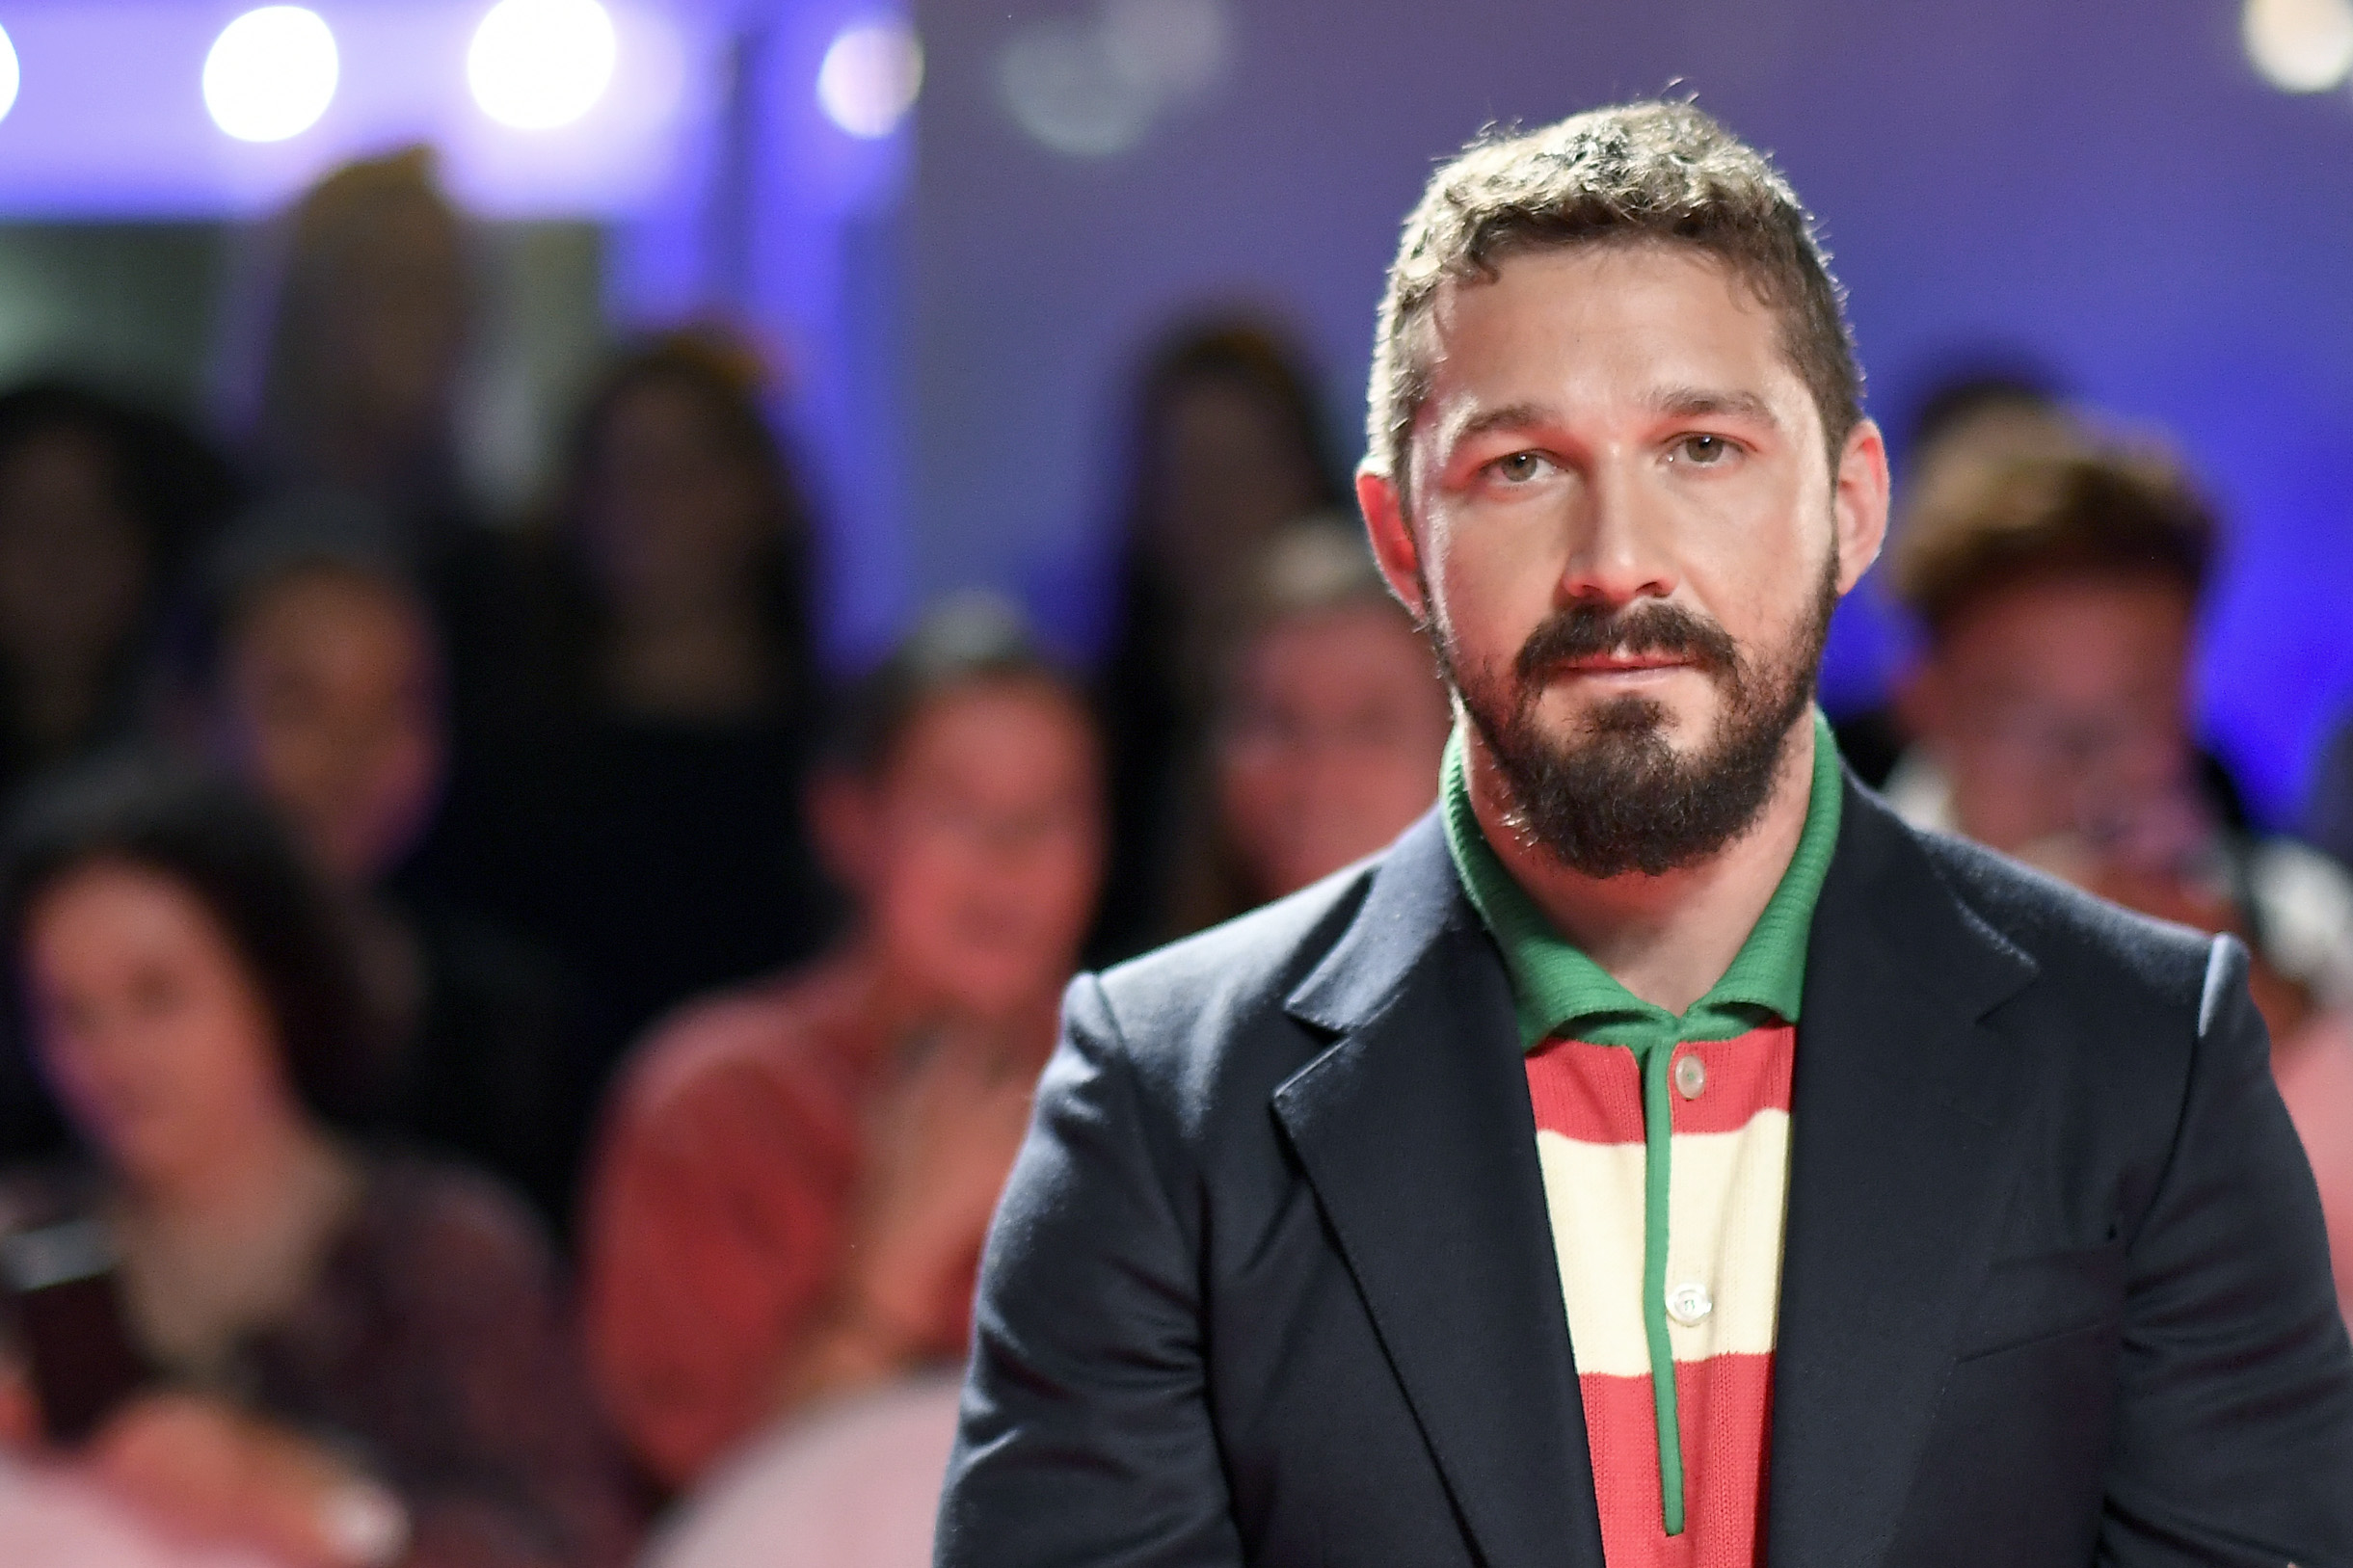 Shia LaBeouf's COVID test reaction is nothing when you know about his other wacky viral moments